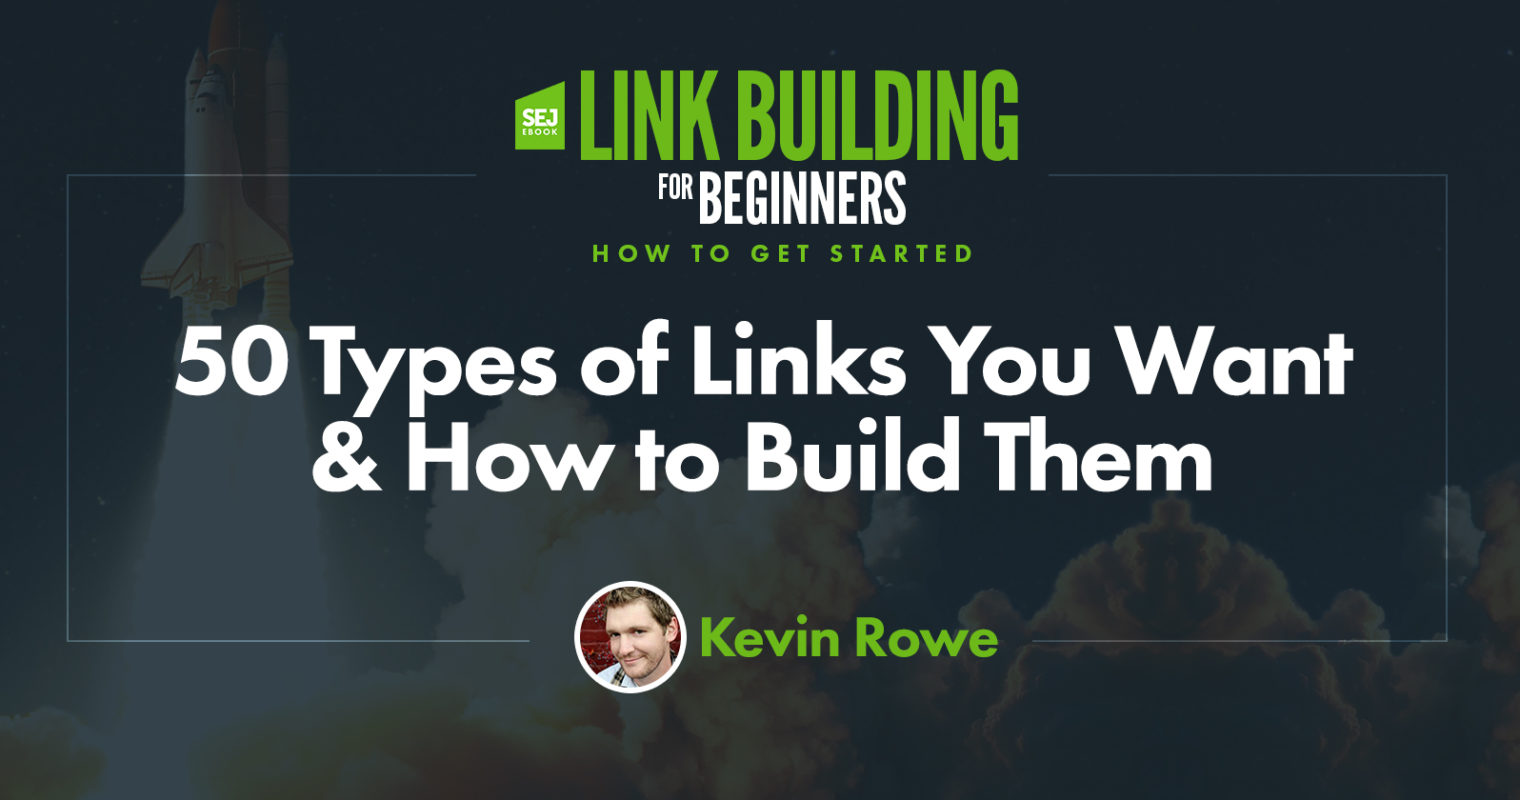 50 Types of Links You Want & How to Build Them